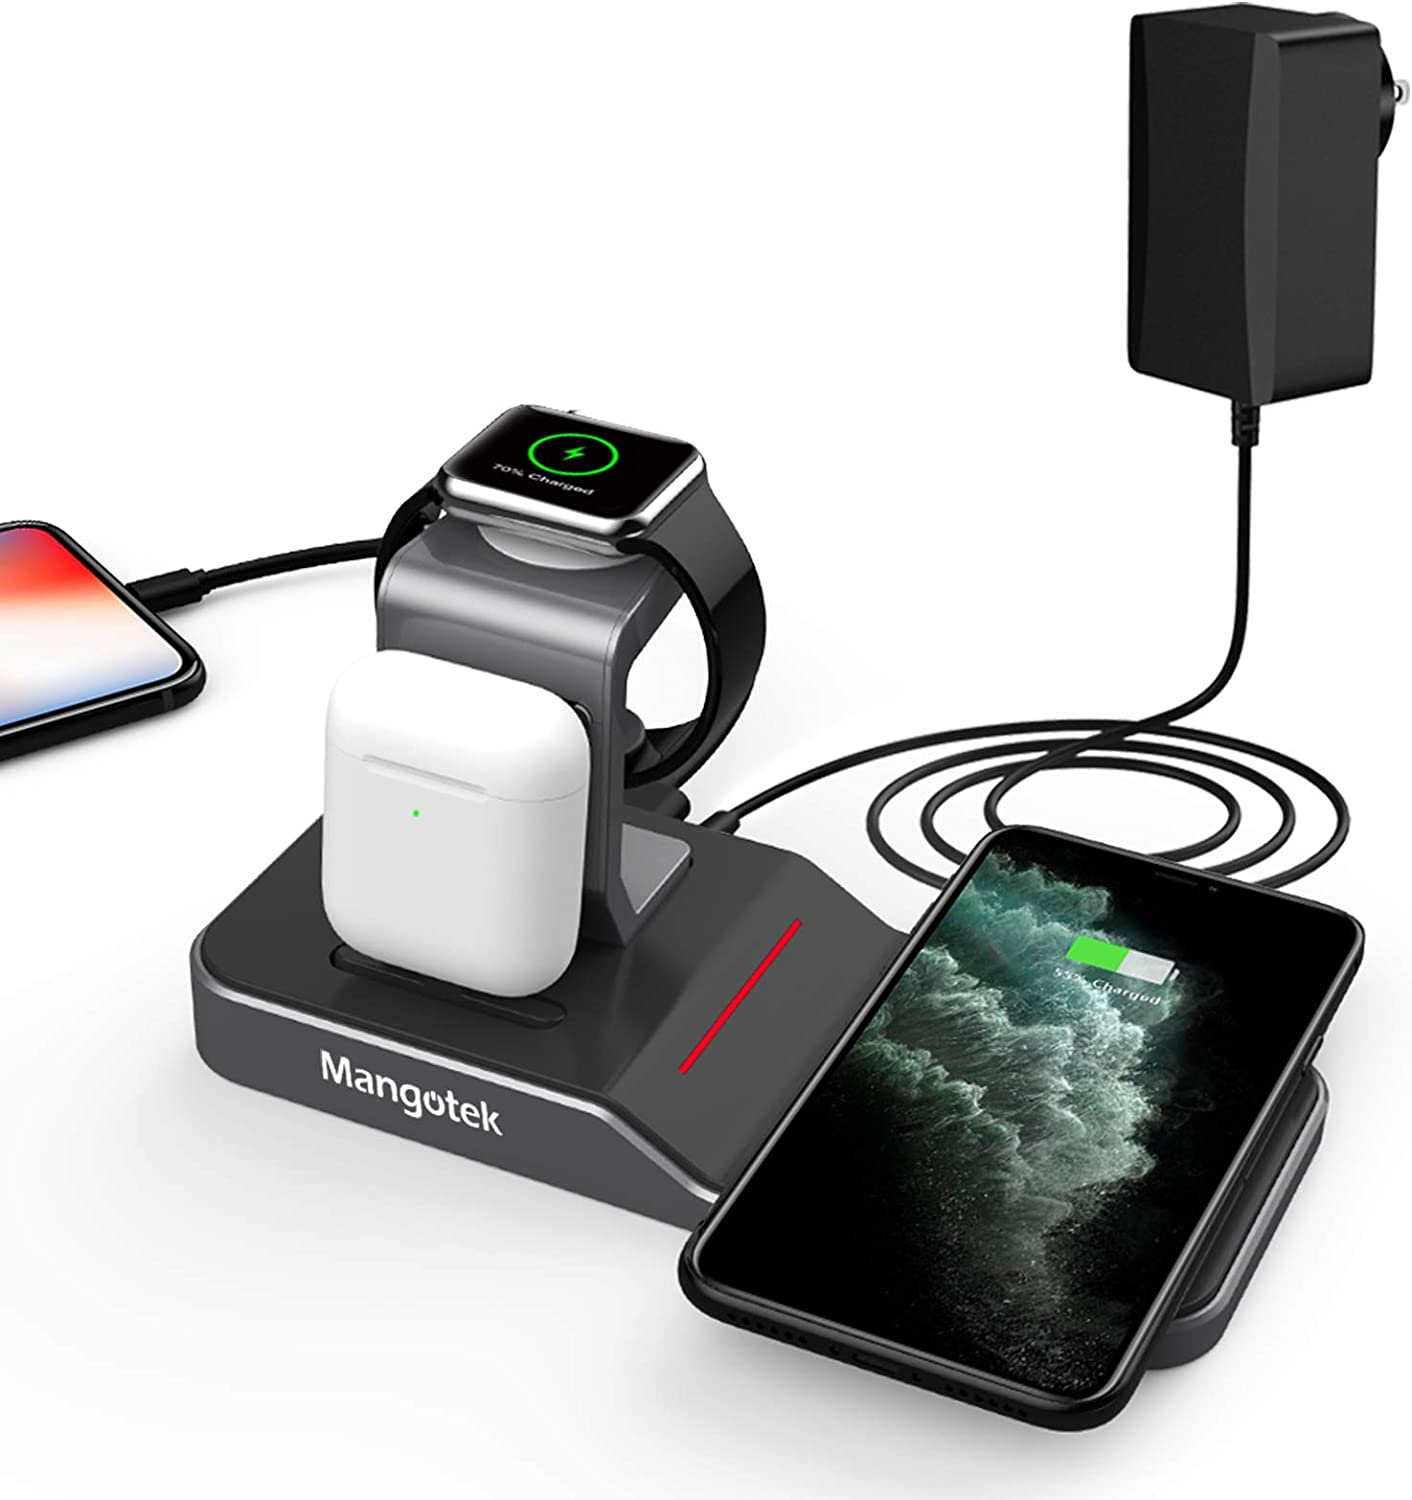 Mangotek Apple Watch Stand Wireless Charger, 4 in 1 Charging Station with Lightning Connector and USB Port for iPhone 12/12 mini/12 Pro/12 Pro Max/11/11 Pro/X/XR/XS/8 and iWatch Serie SE/6/5/4/3/2/1